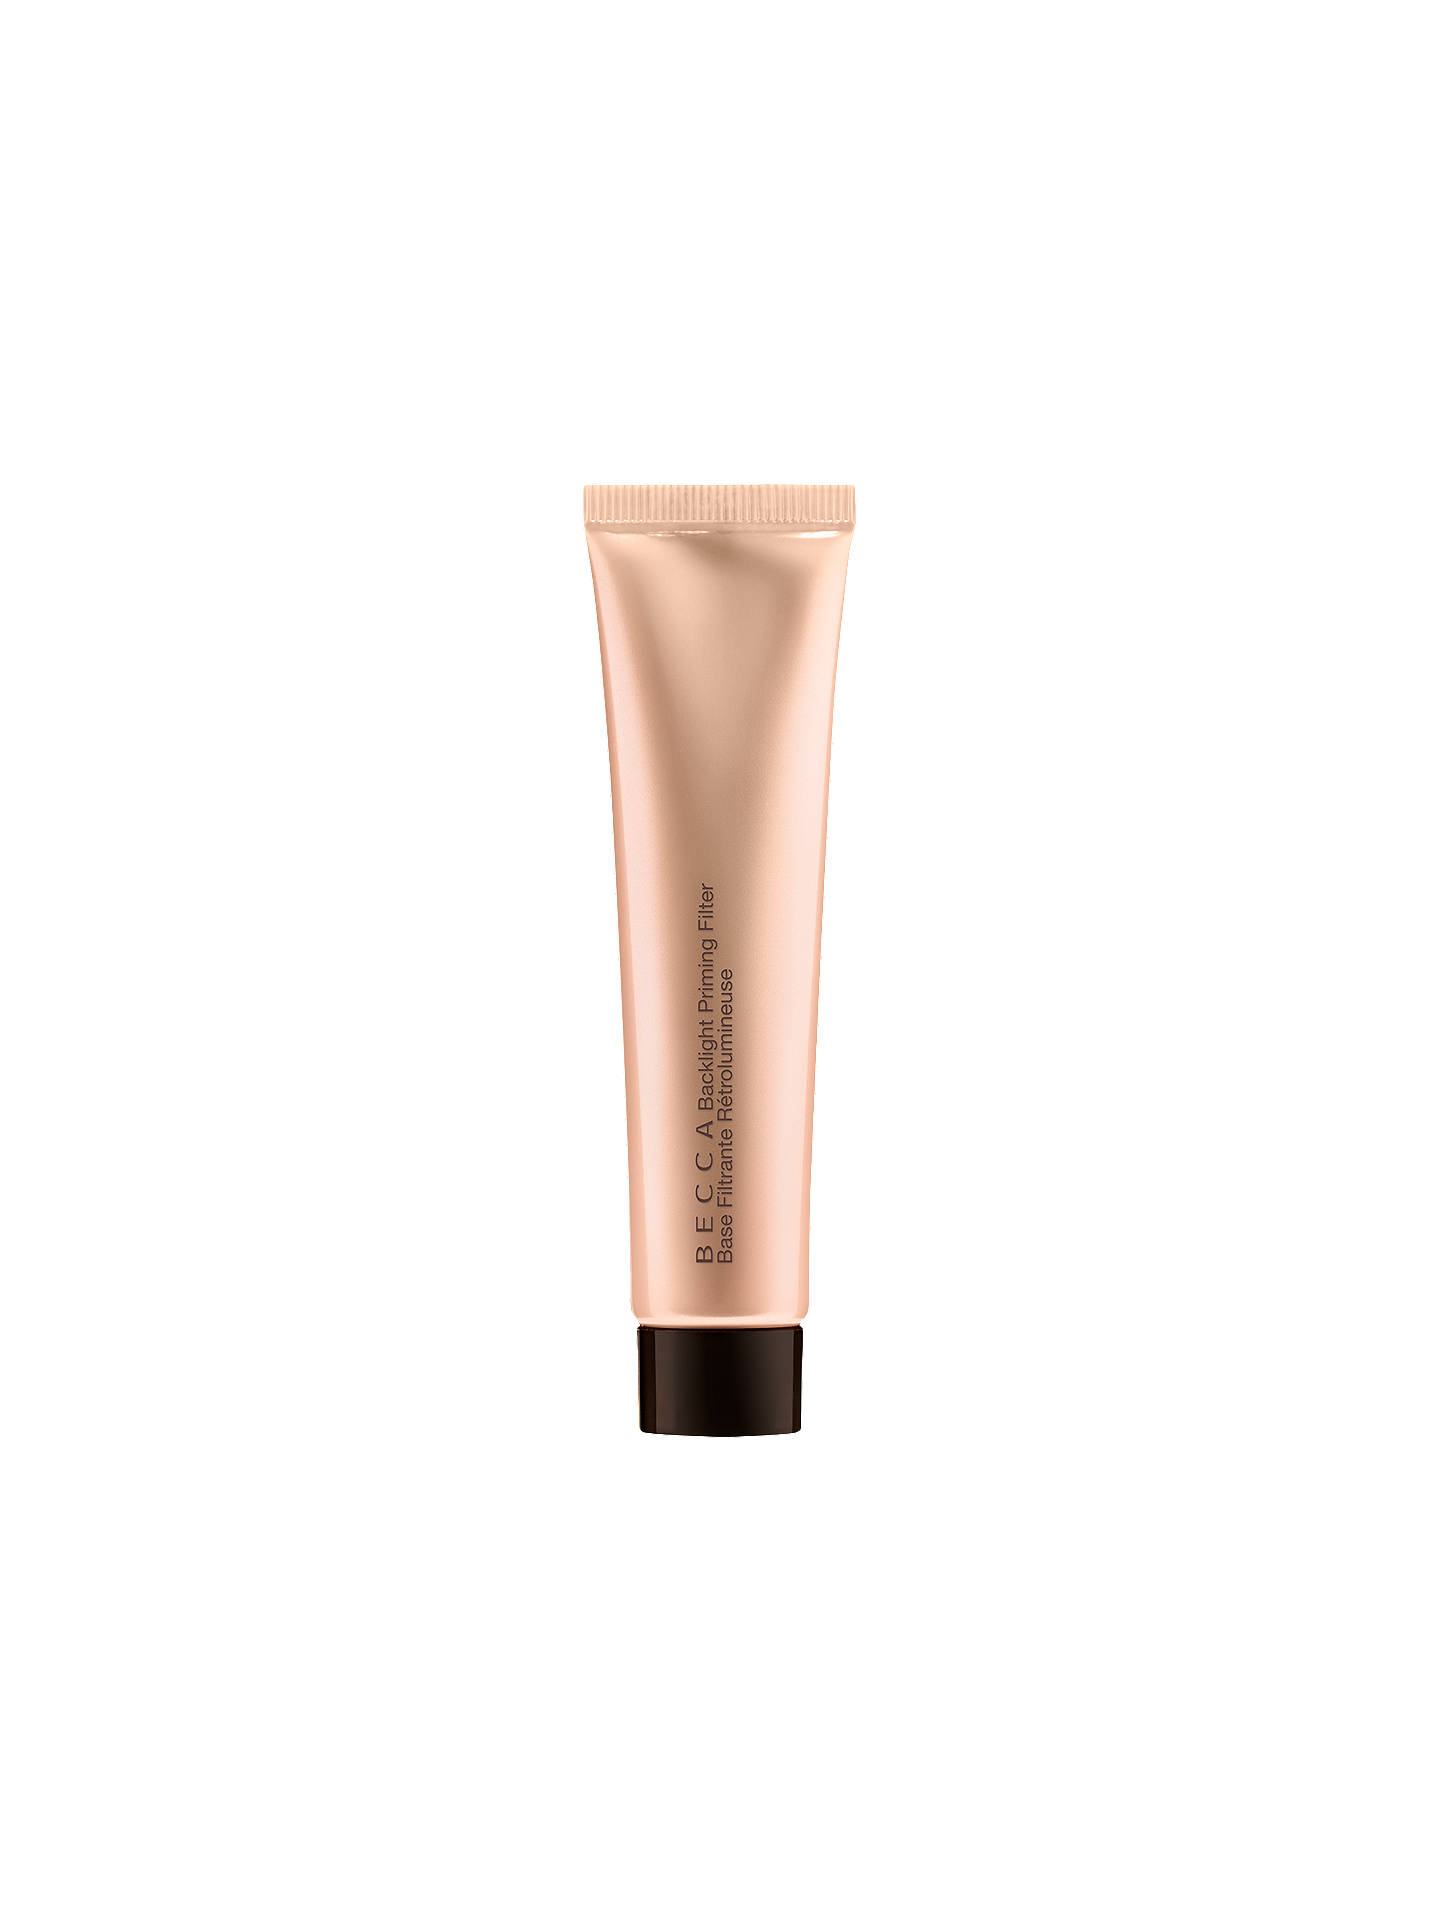 BuyBECCA Backlight Priming Filter Mini Online at johnlewis.com